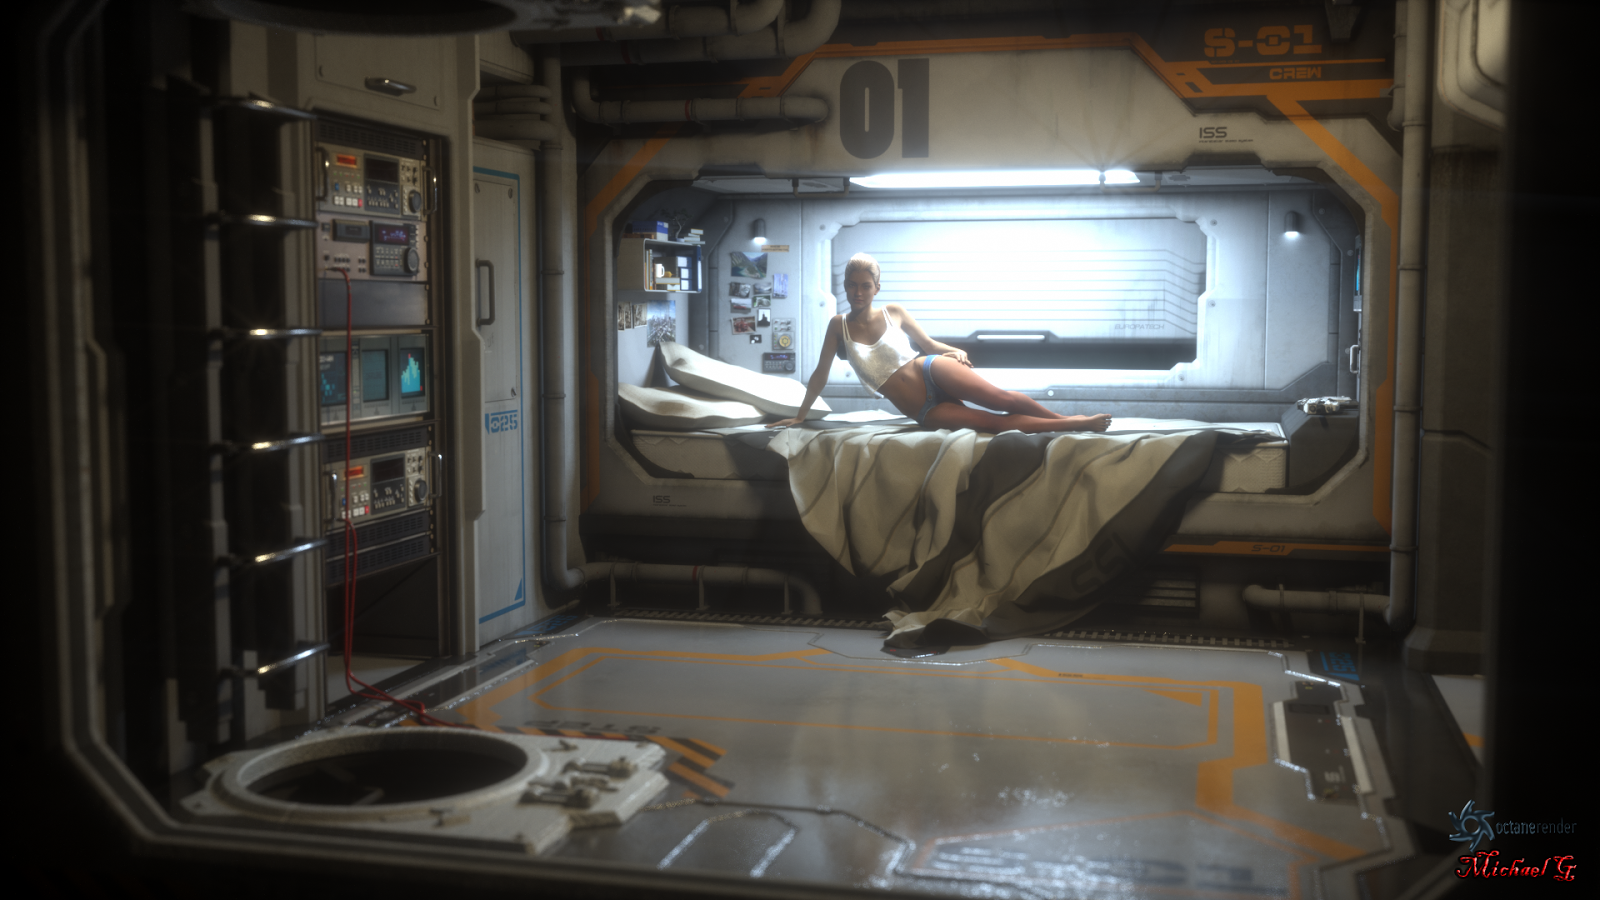 Woman in Mars base bedroom by Michael Gibson